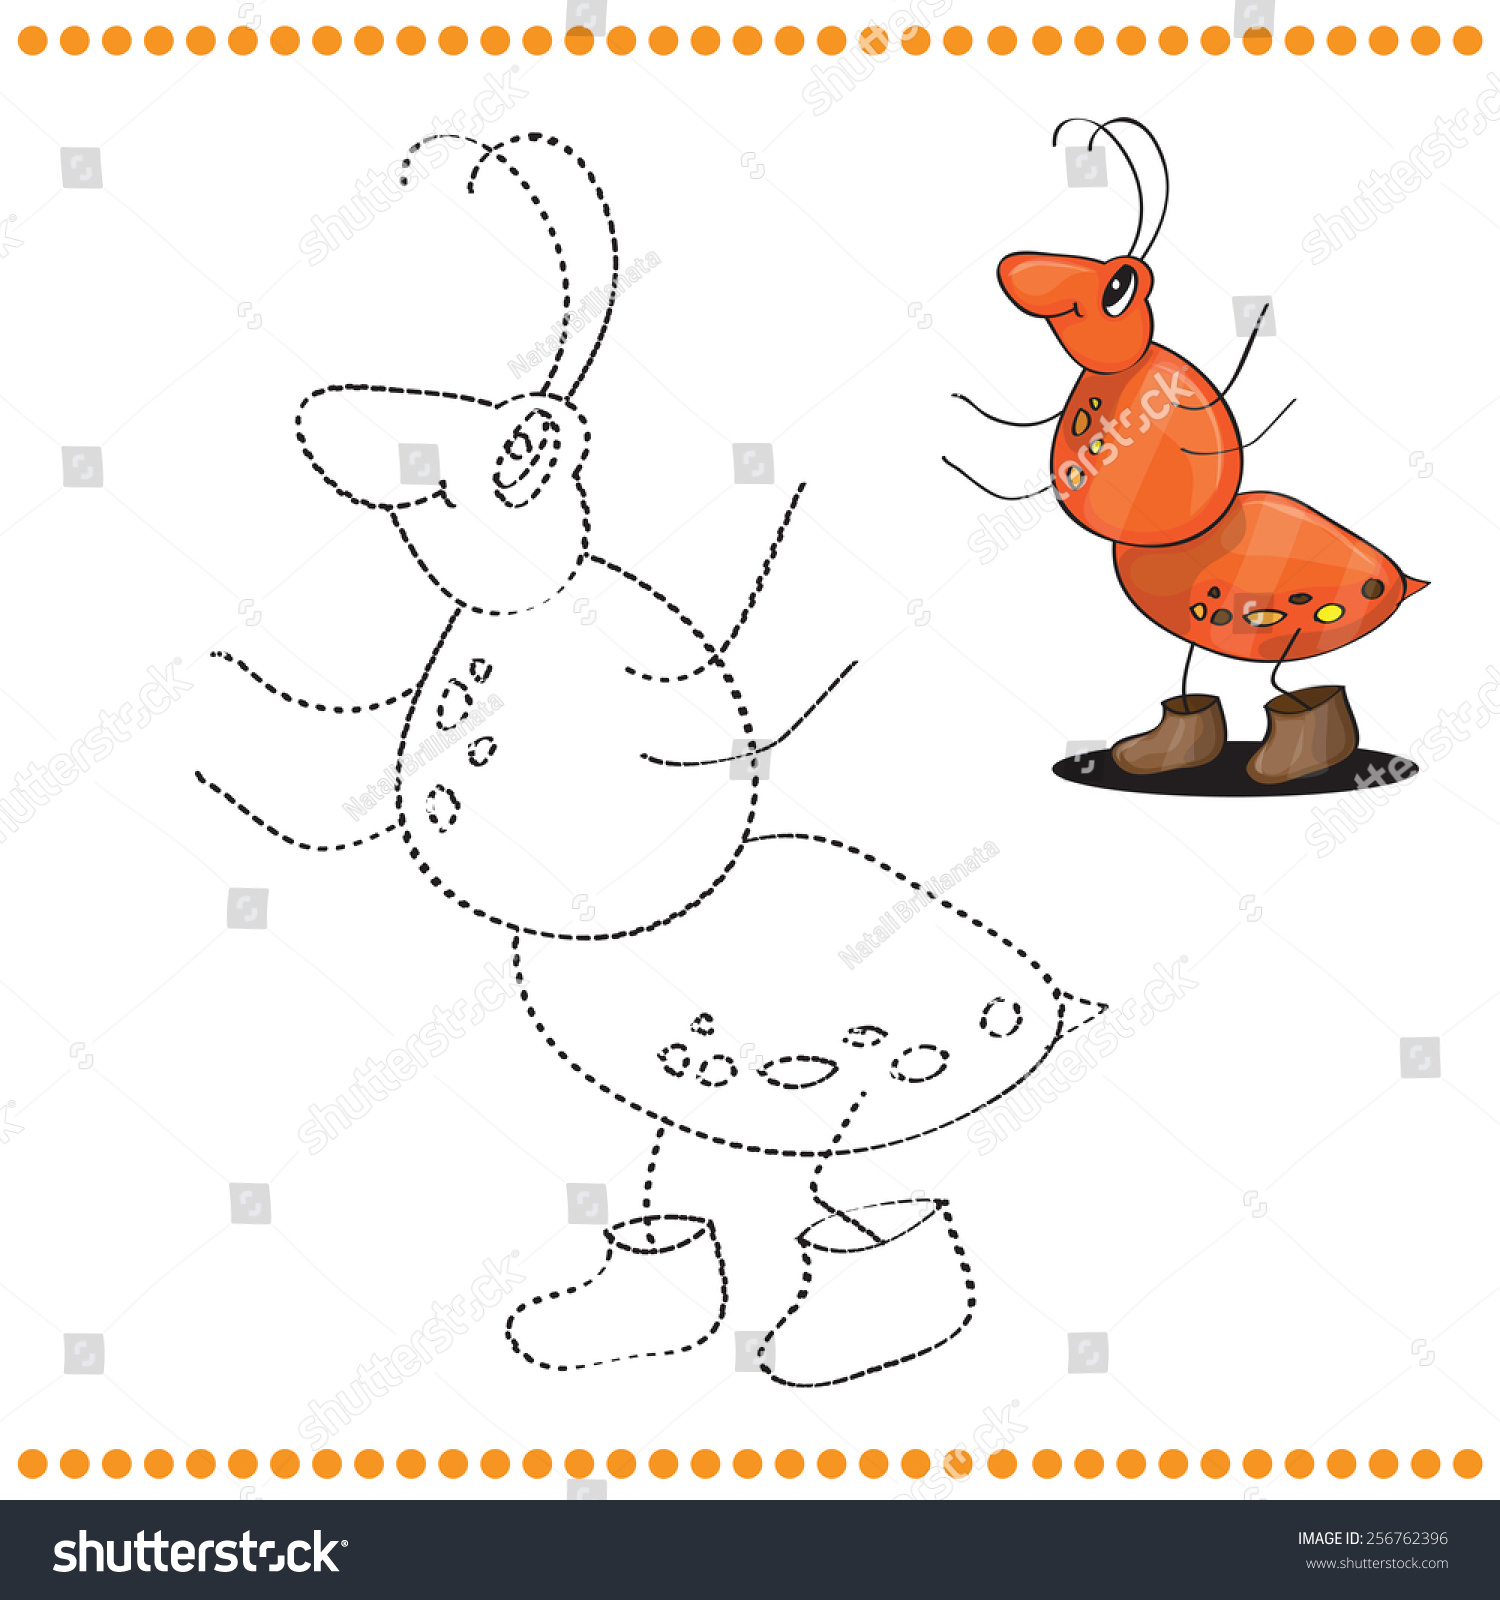 Connect Dots Coloring Page Ant Cartoon Stock Vector 256762396